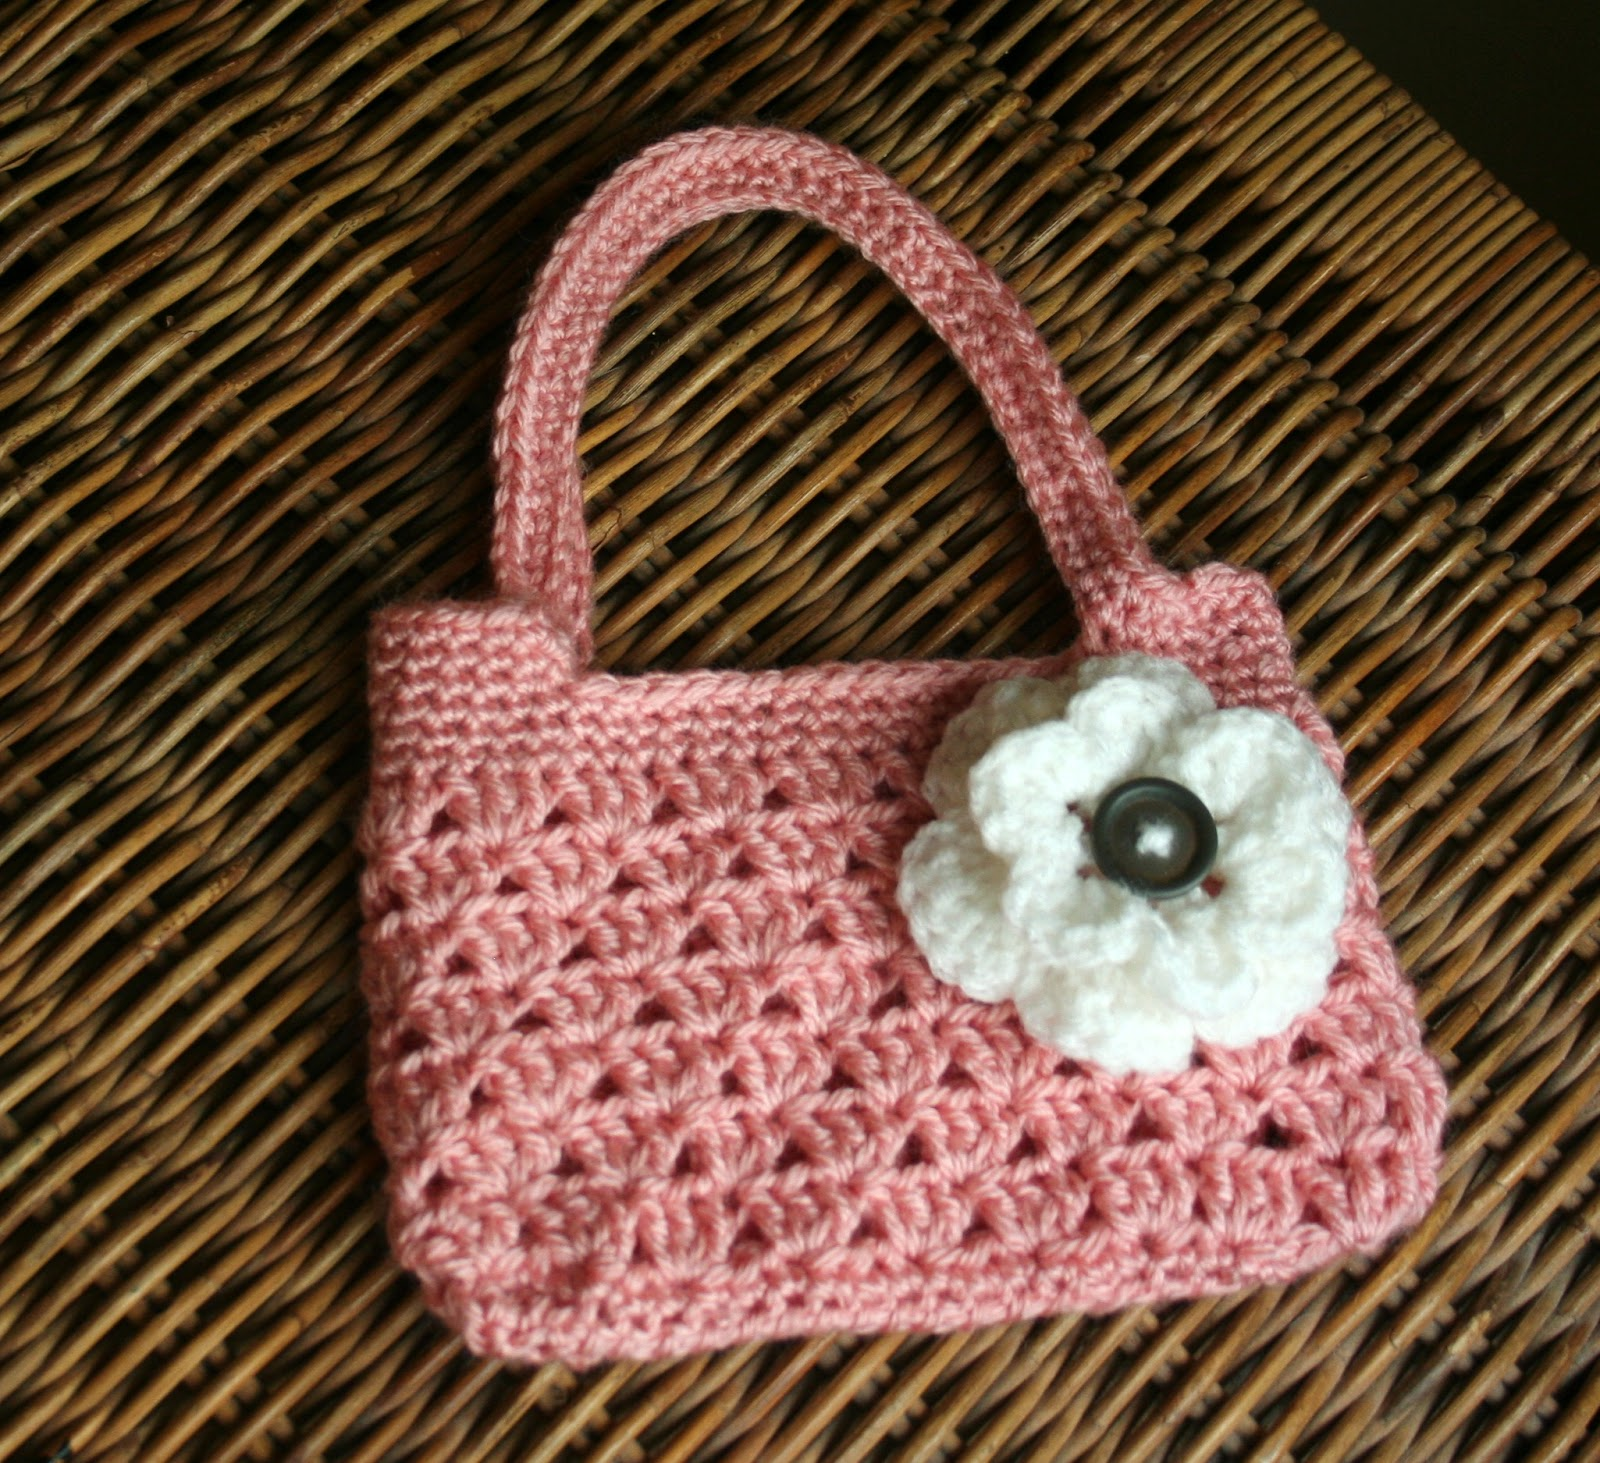 Free Crochet Patterns For Purses : Tampa Bay Crochet: Free Easy Crochet Purse Pattern